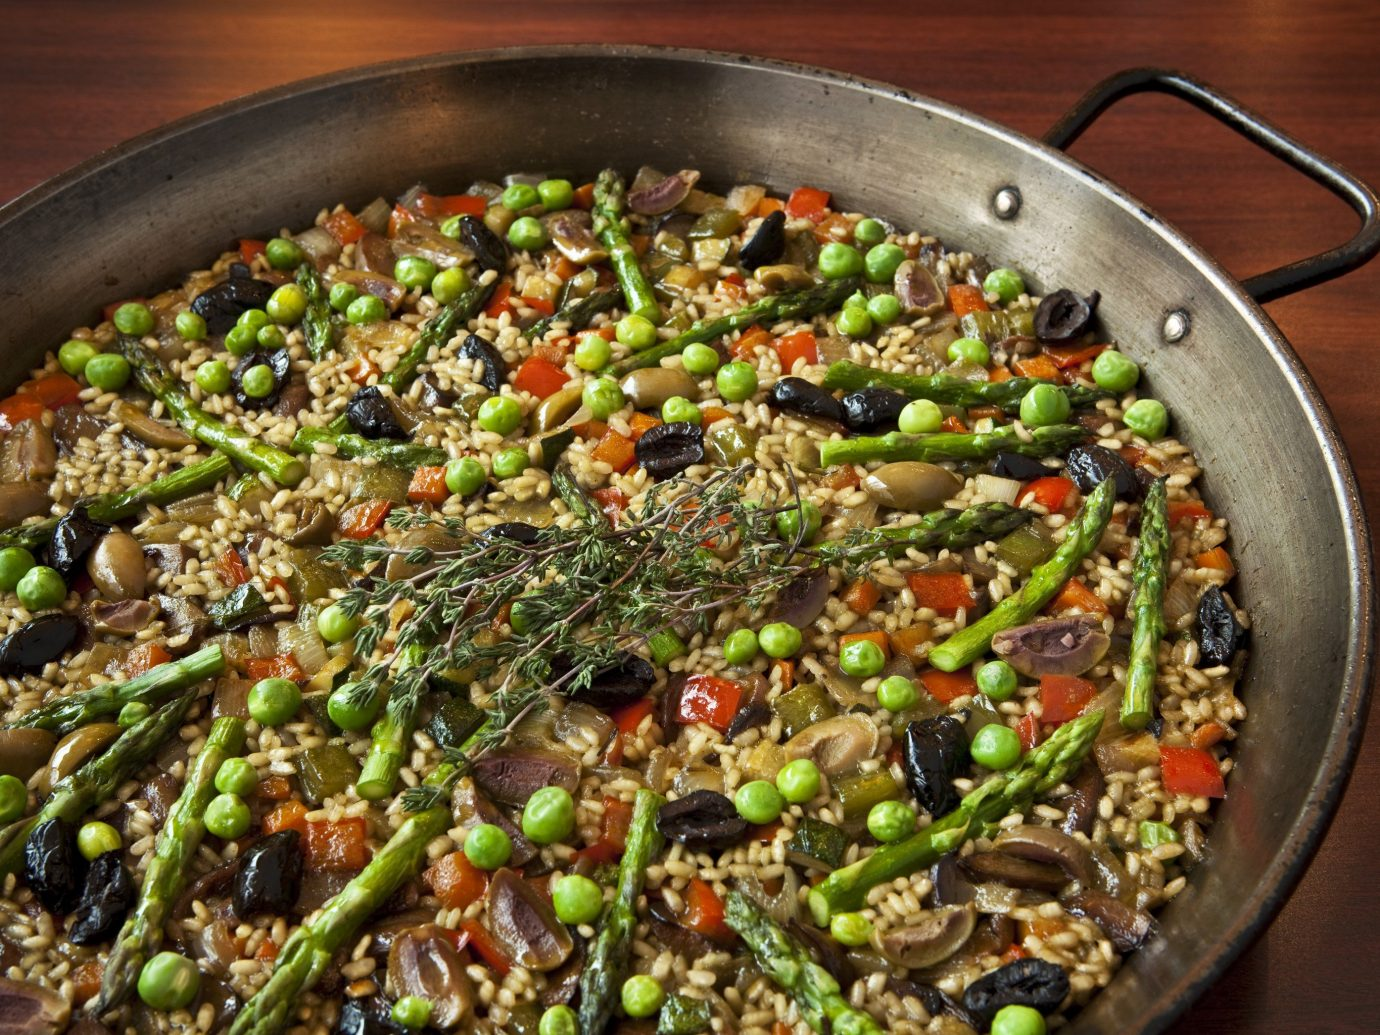 Food + Drink food dish pan produce cuisine vegetable wooden stove paella cooked fresh saute